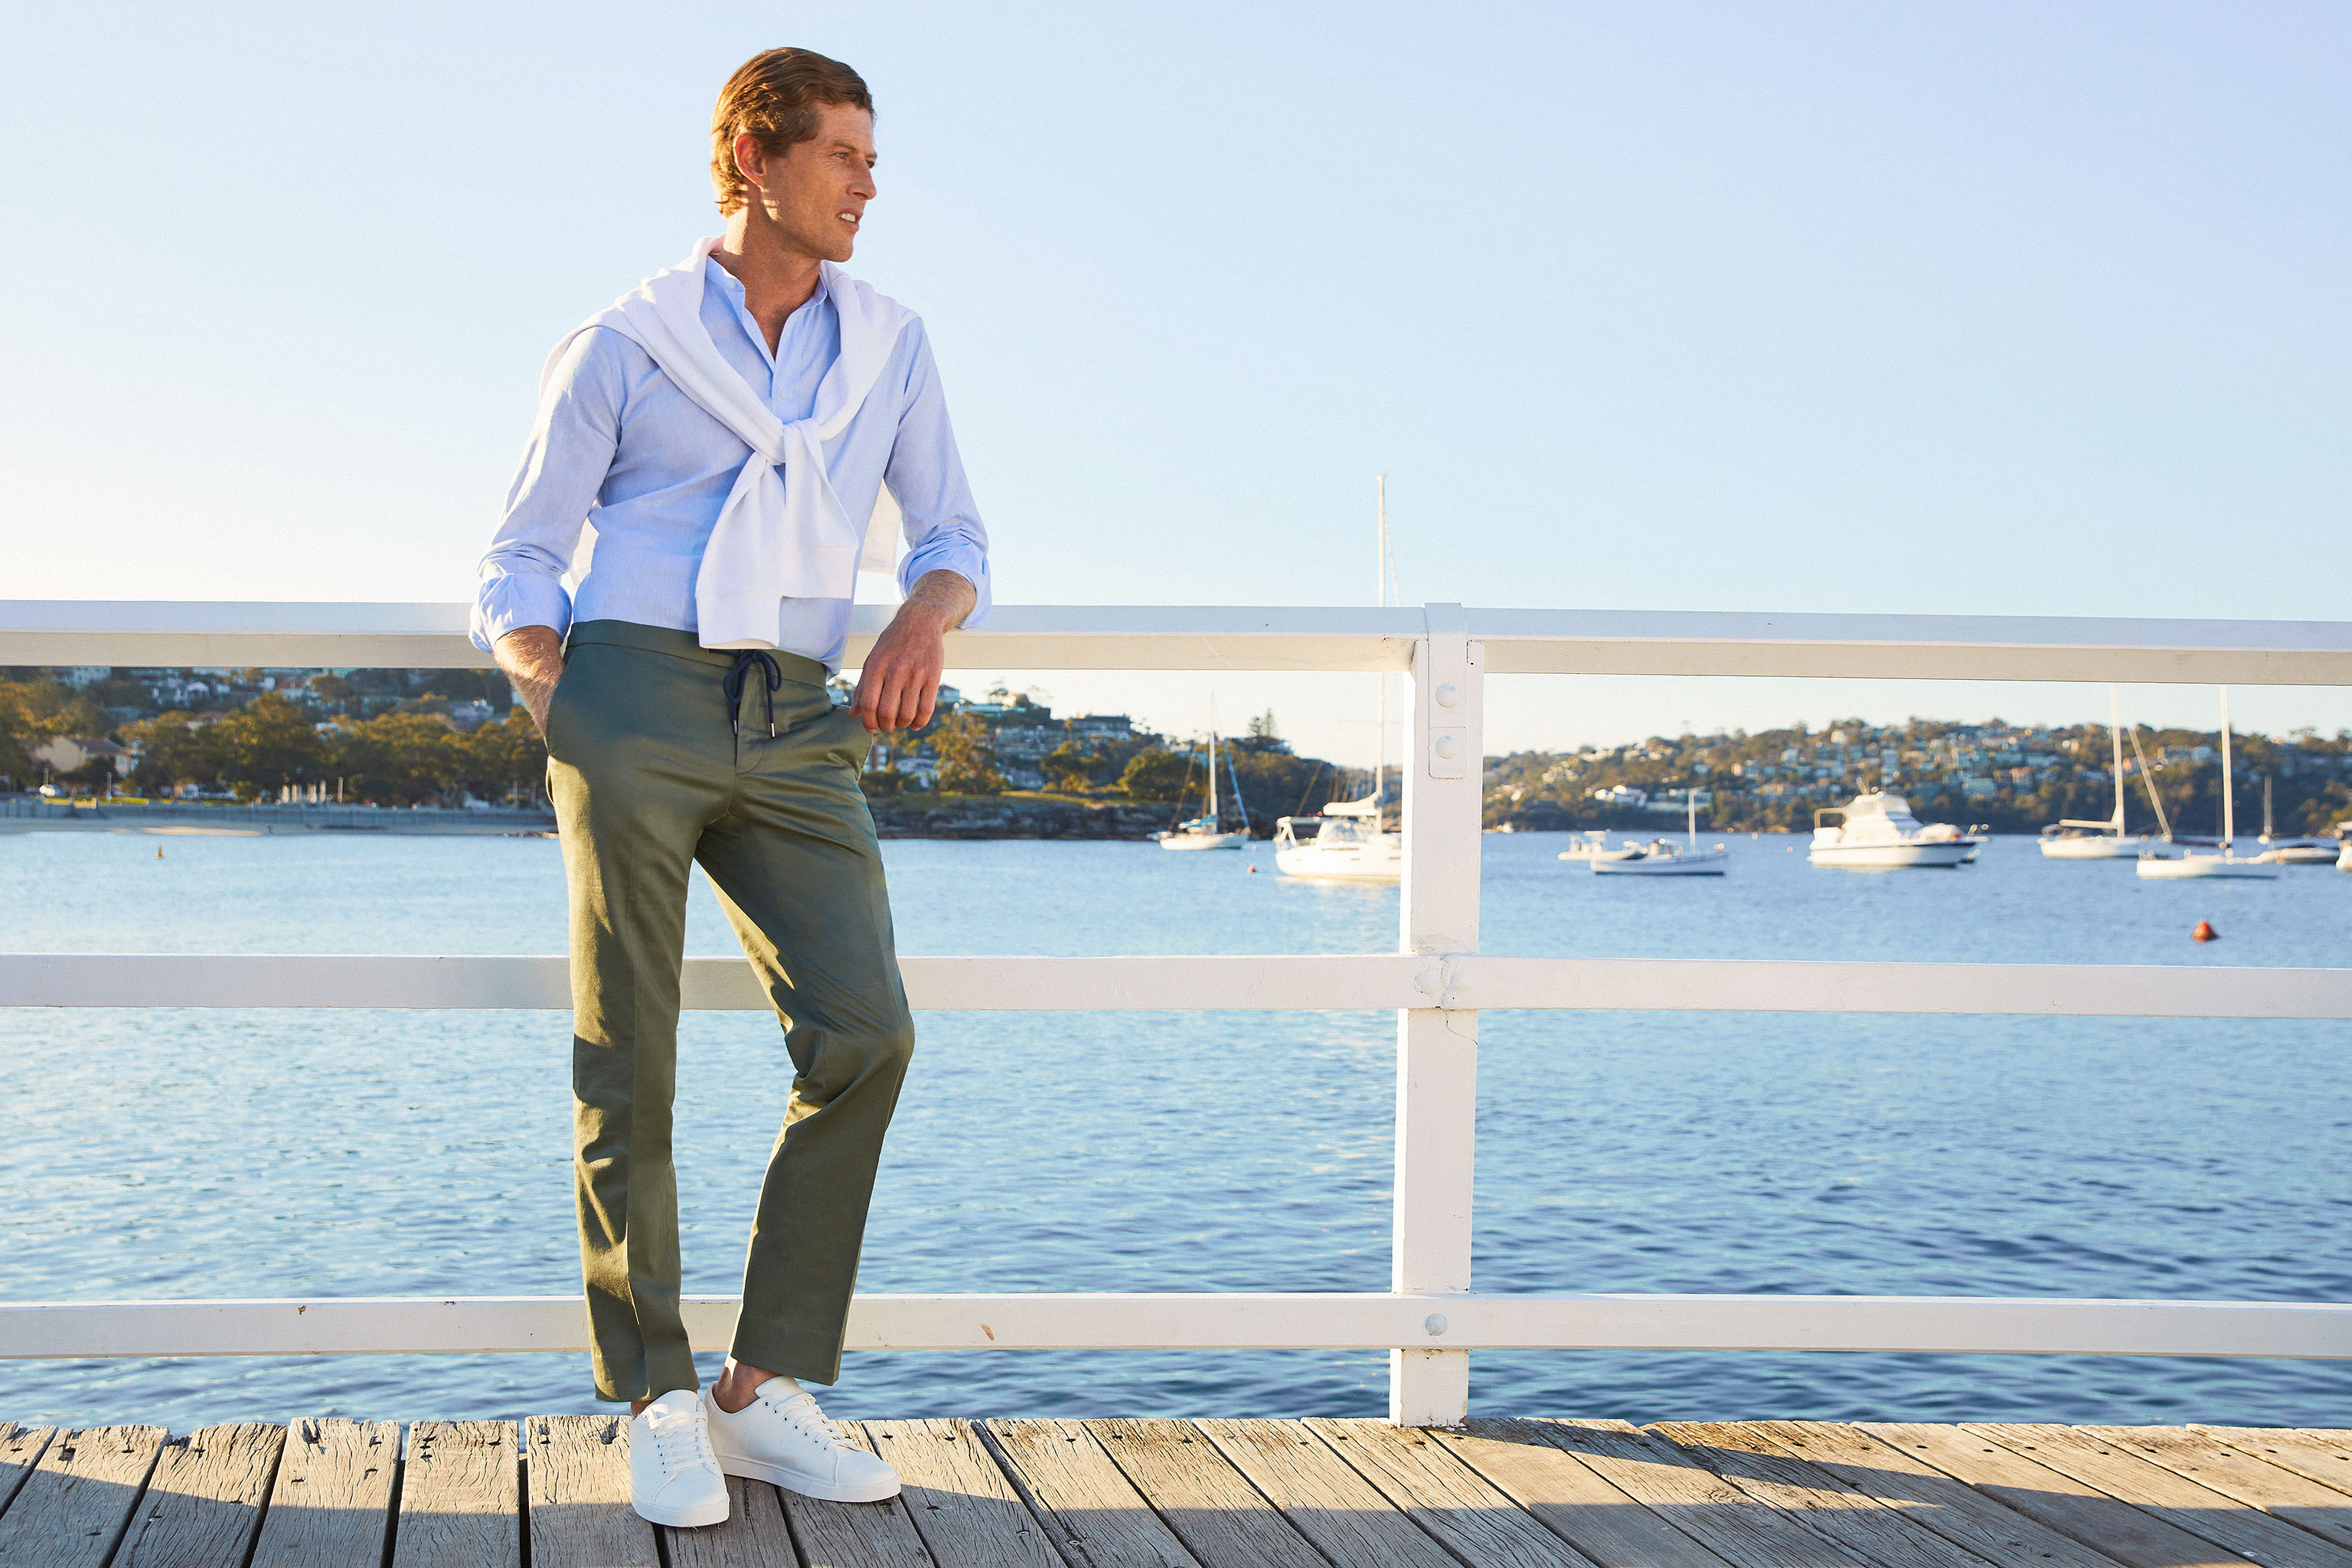 """InStitchu, an Australian custom clothing brand, is doing its part to help its pandemic-weary customers escape the challenges of living in a coronavirus world. The Sydney-based company's spring campaign, The Coastal Collection, is shot at Balmoral Beach and features lightweight woolen suits, deconstructed linen blazers, cotton chinos and more relaxed casual shirts for men. The campaign also showcases women's wear, a growth area for the company. """"No matter what you do for a living or where you're based, it's been a challenging year,"""" said cofounder Robin McGowan. """"With this campaign we wanted to try and capture the essence of the stunning Australian coastline and the beauty it represents. Whether that means jumping in the car — if you're allowed — and visiting some of the spots in the literal sense, or simply soaking up some of the poetry and majesty these beaches represent, we're big believers that a connection to nature is a great way to inject some positivity back into our lives."""" InStitchu operates 12 showrooms in Australia and New York City where customers can work with a stylist to create their own garments. — JEAN E. PALMIERI"""